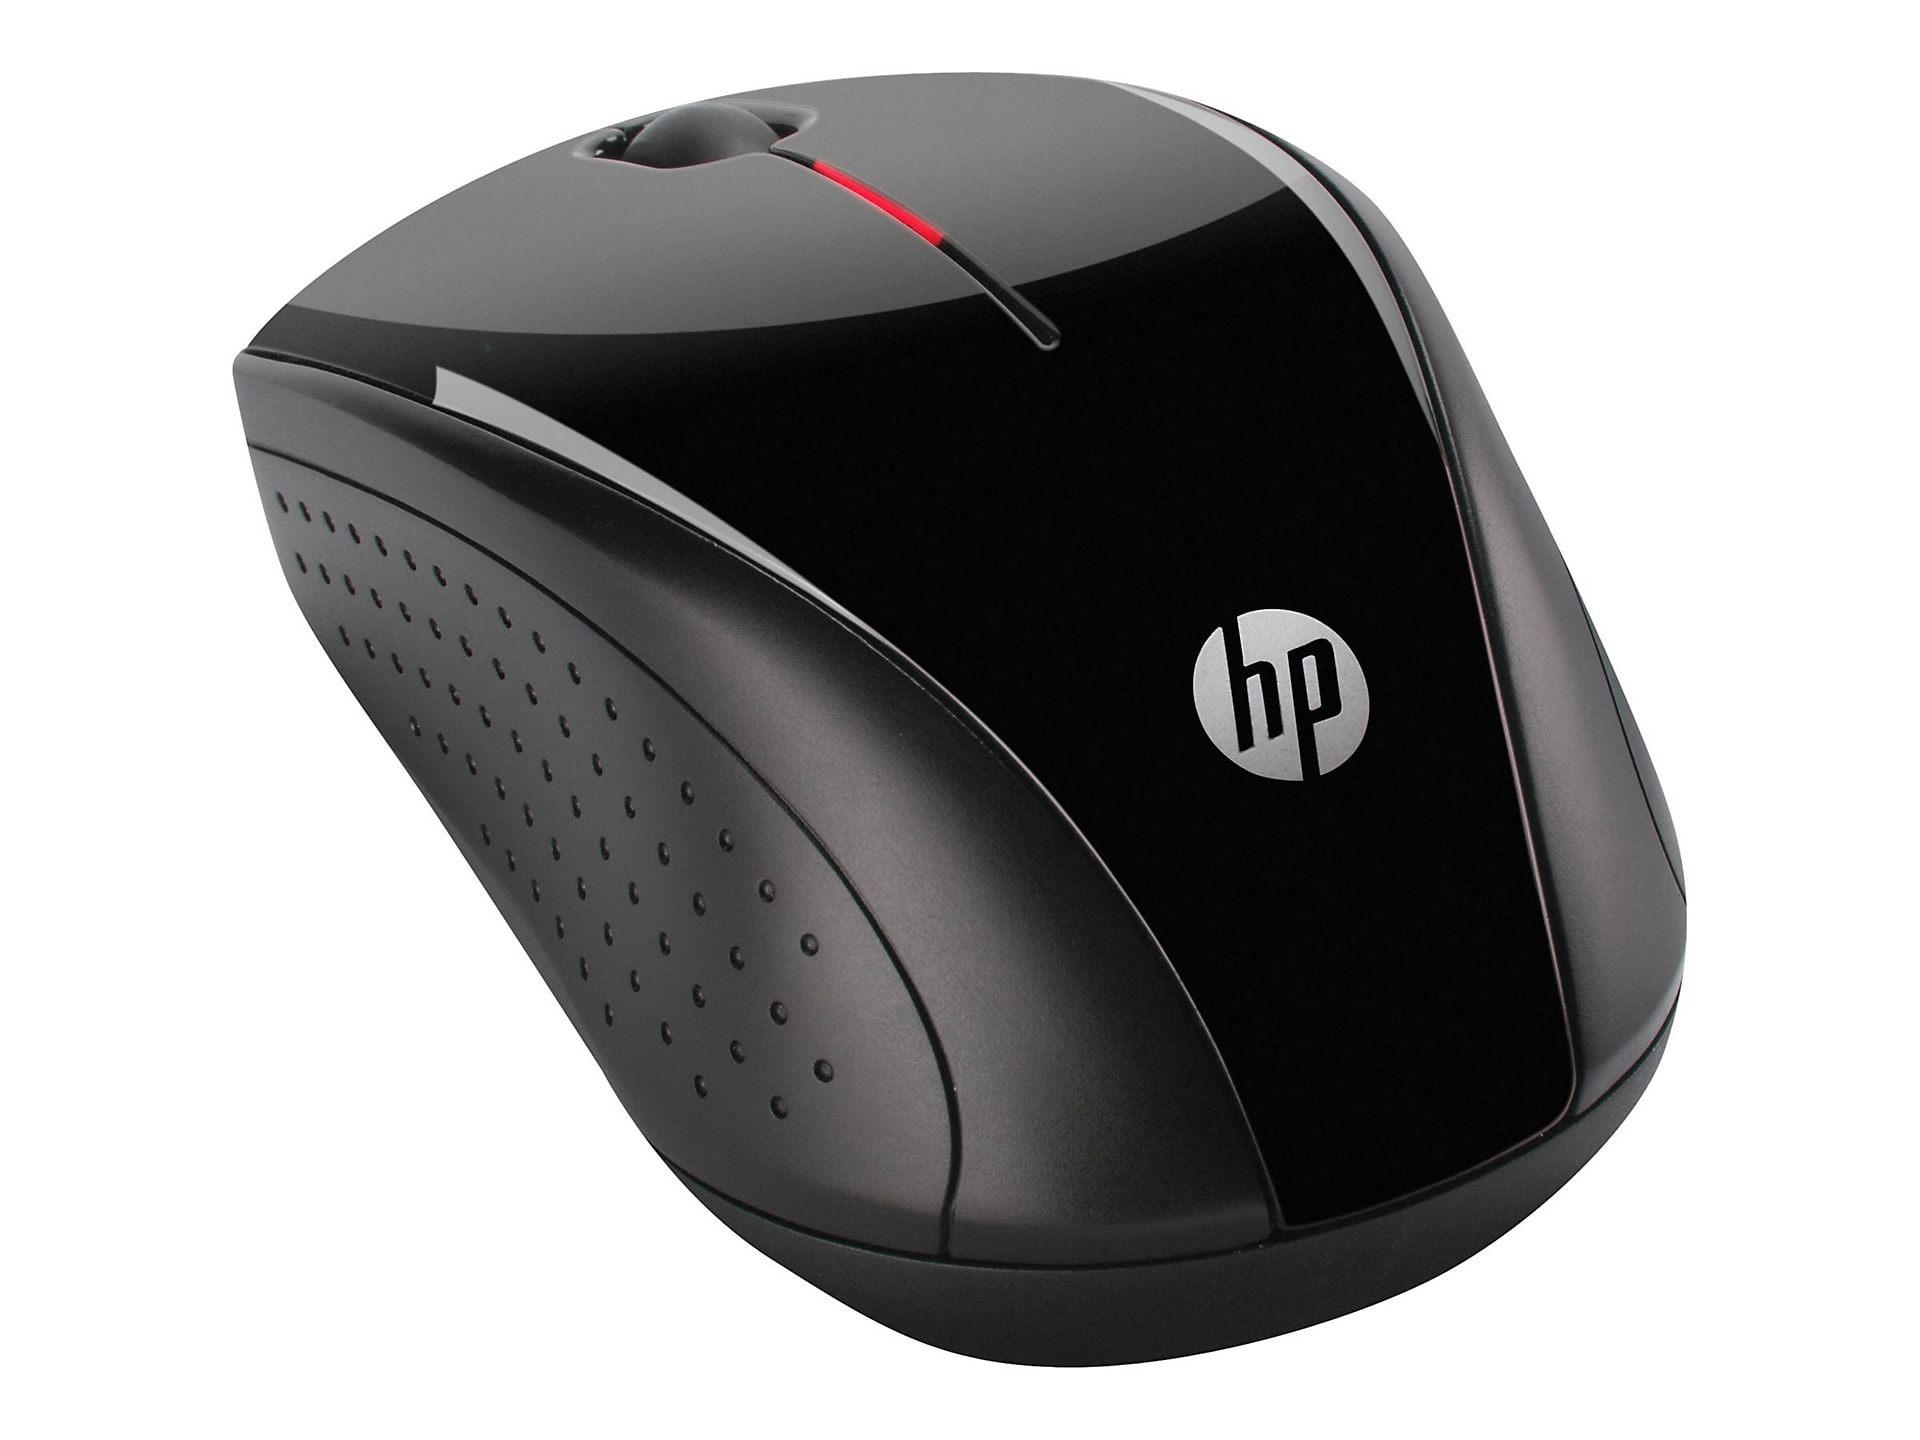 Shop HP Keyboards & Mice